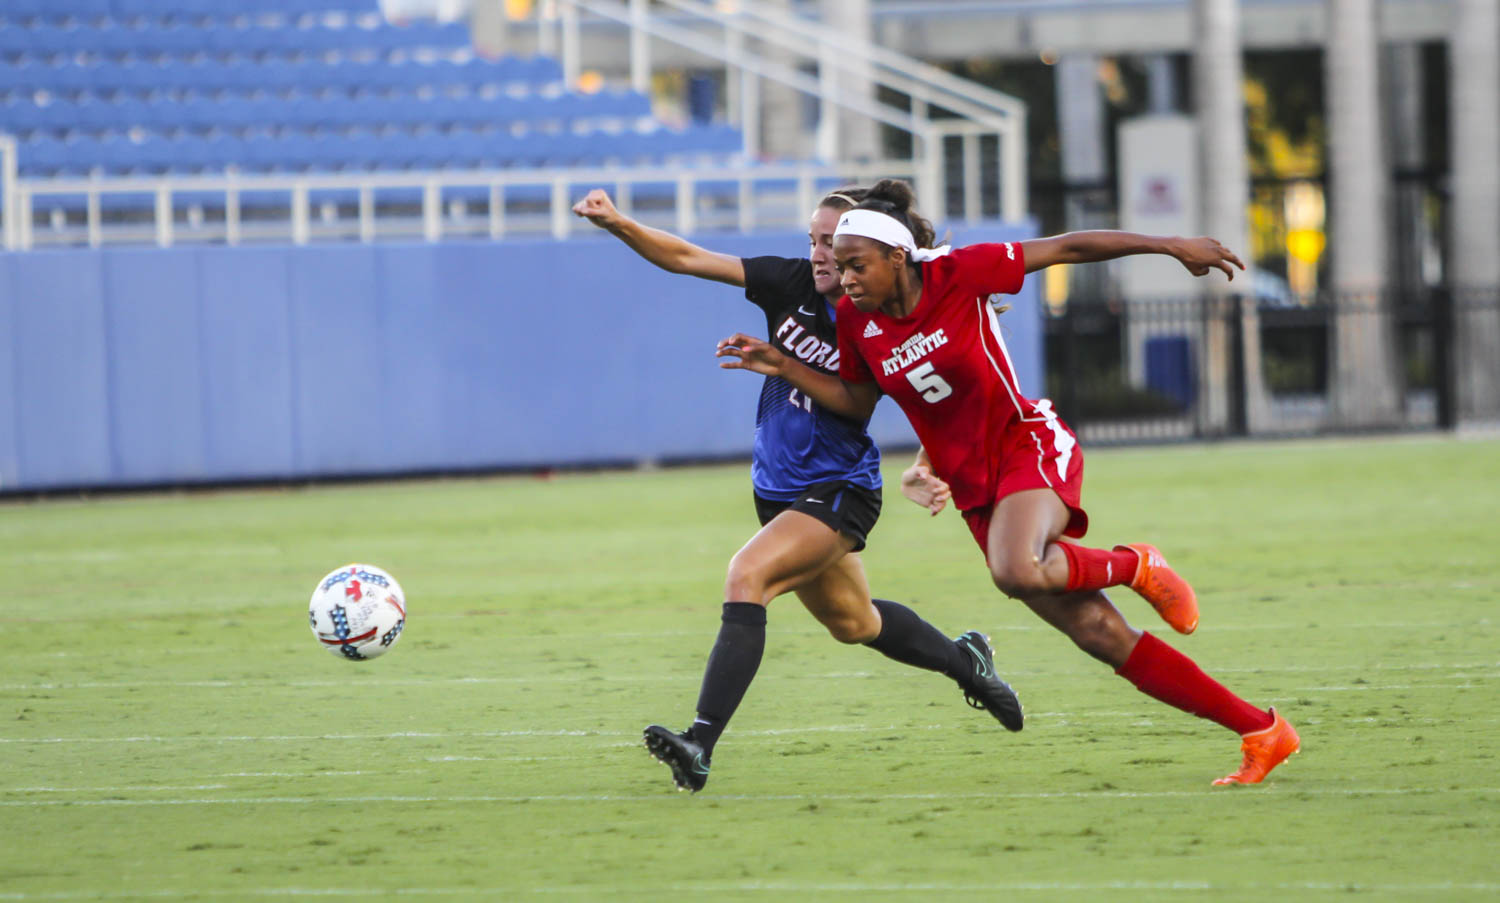 FAU forward Elisha Holmes (5) attempts to reach the soccer ball first before Florida defender Julia Lester (20).